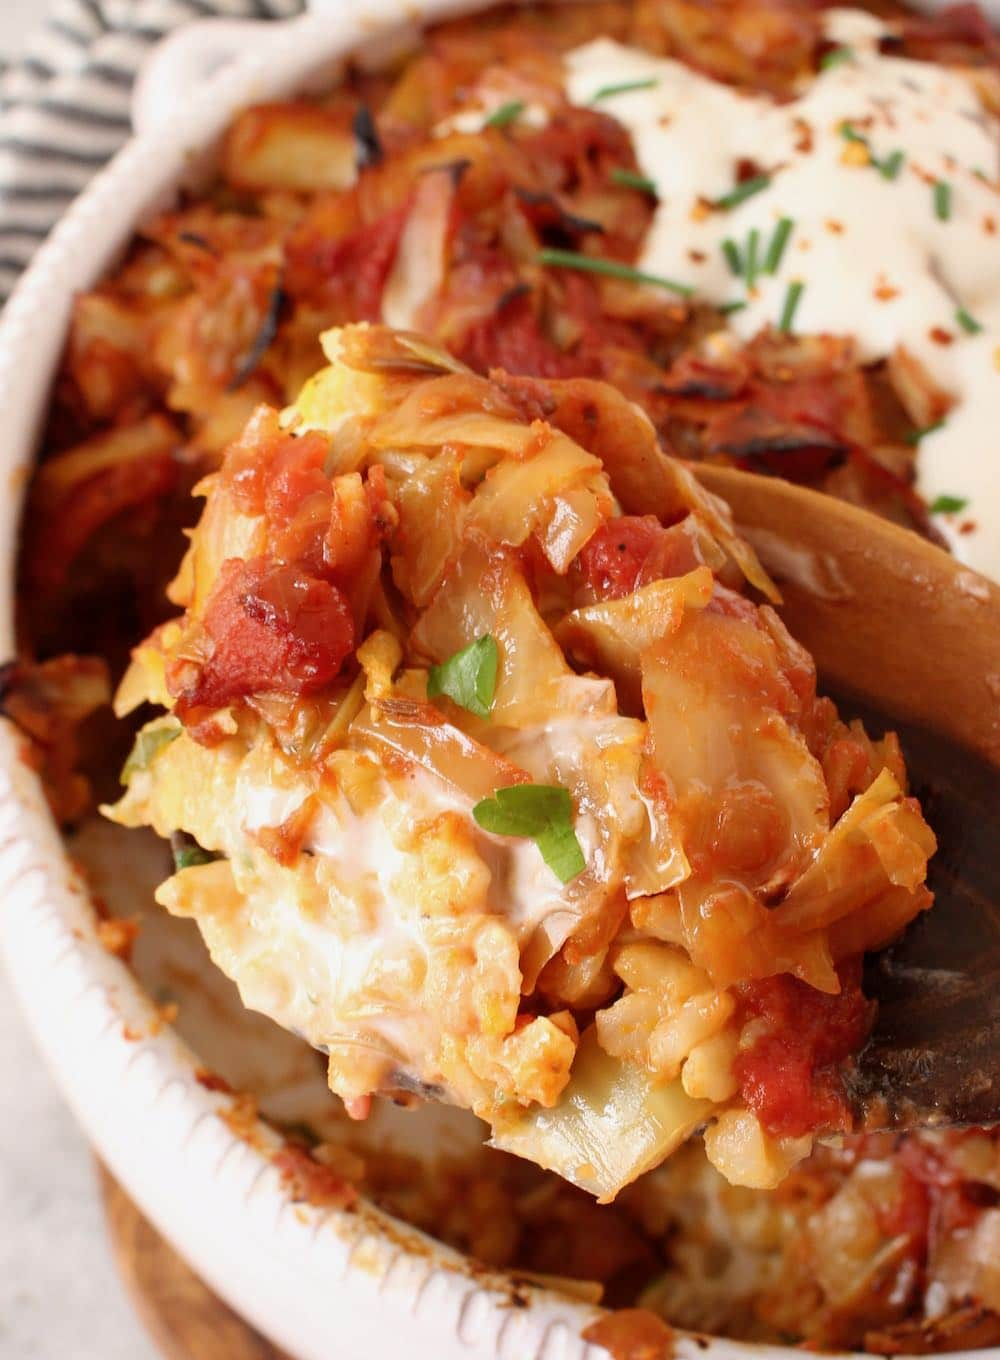 Deconstructed Cabbage Roll Casserole